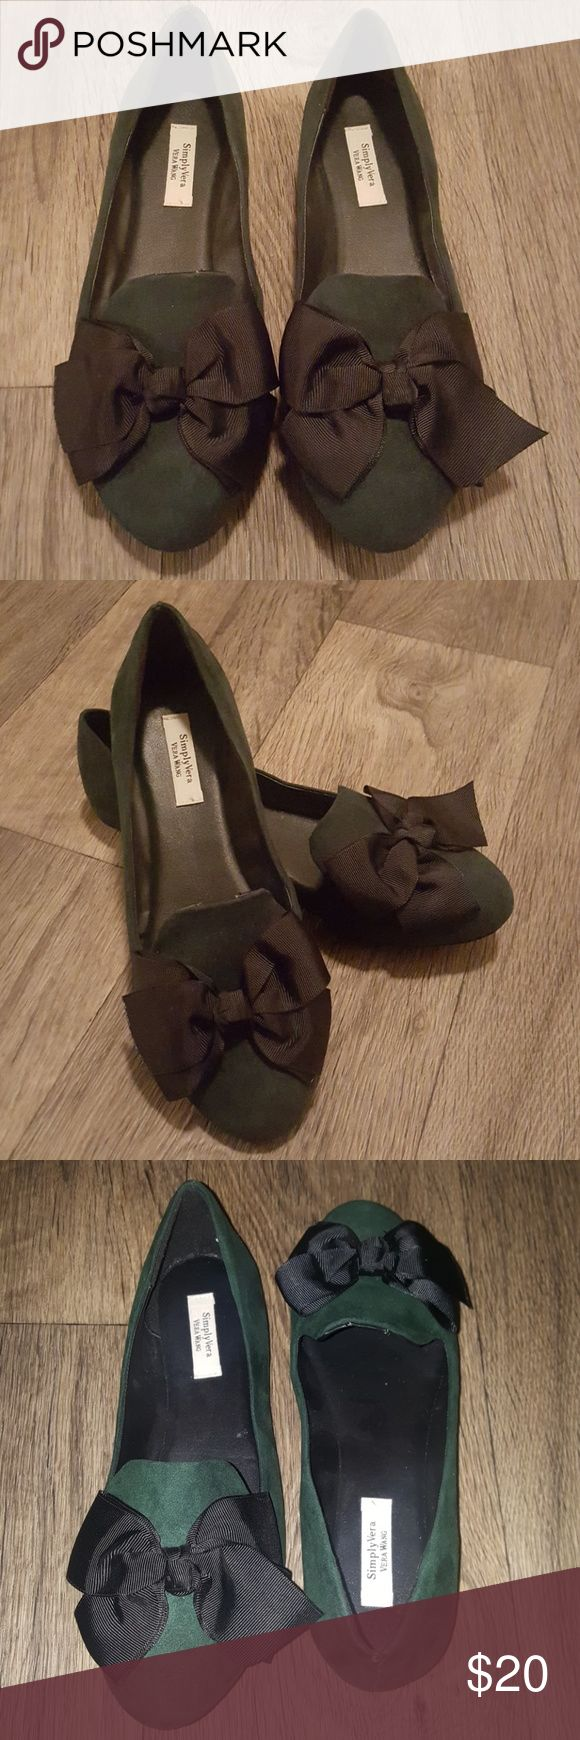 Green Smoking Flat Adorable green smoking flats with black bow. Faux suede, worn only once!!! Simply Vera Vera Wang Shoes Flats & Loafers